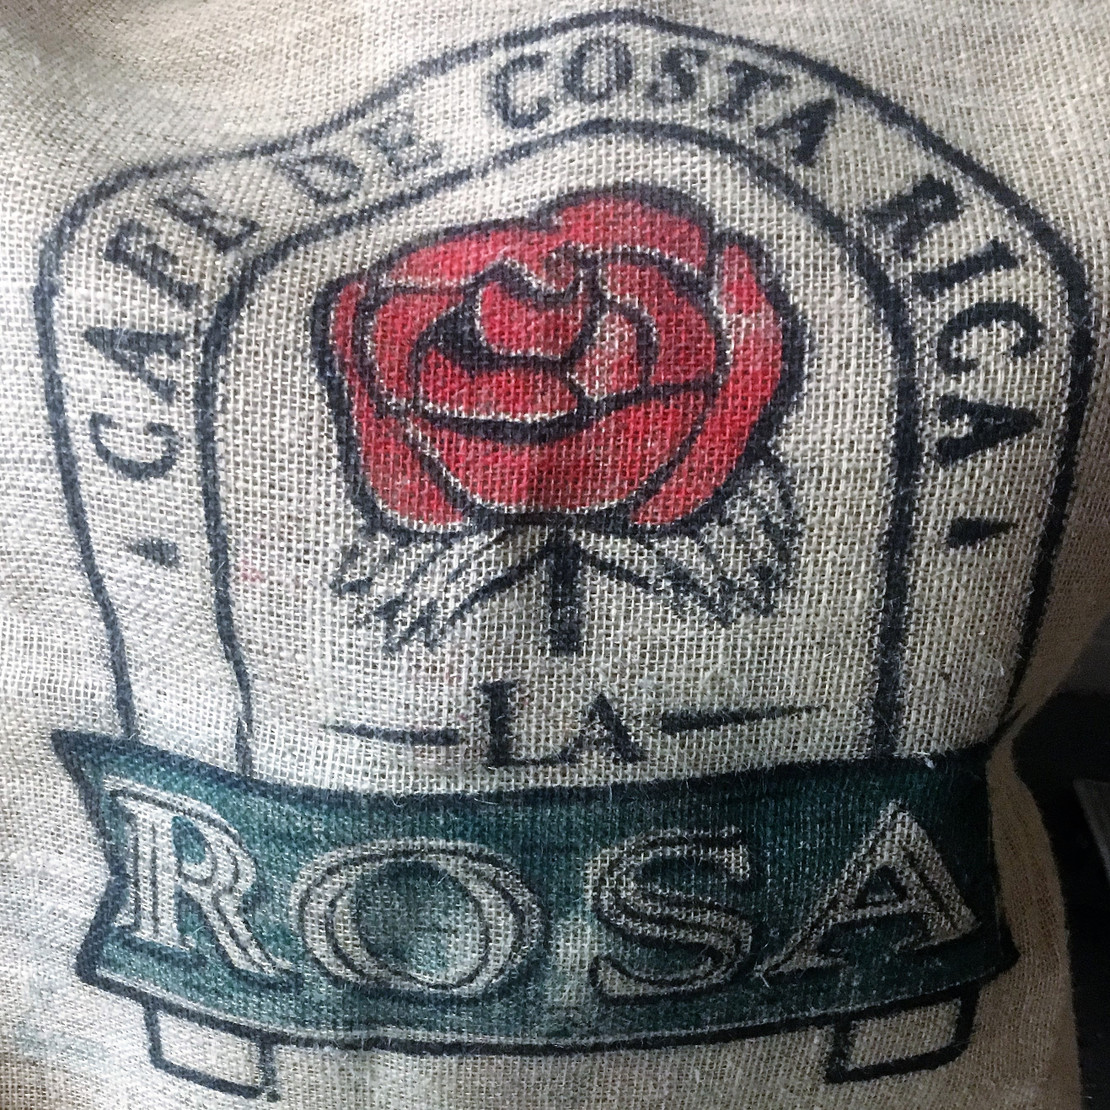 NEW ARRIVAL!!! Costa Rica SHB Naranjo La Rosa EP Green and Roasted